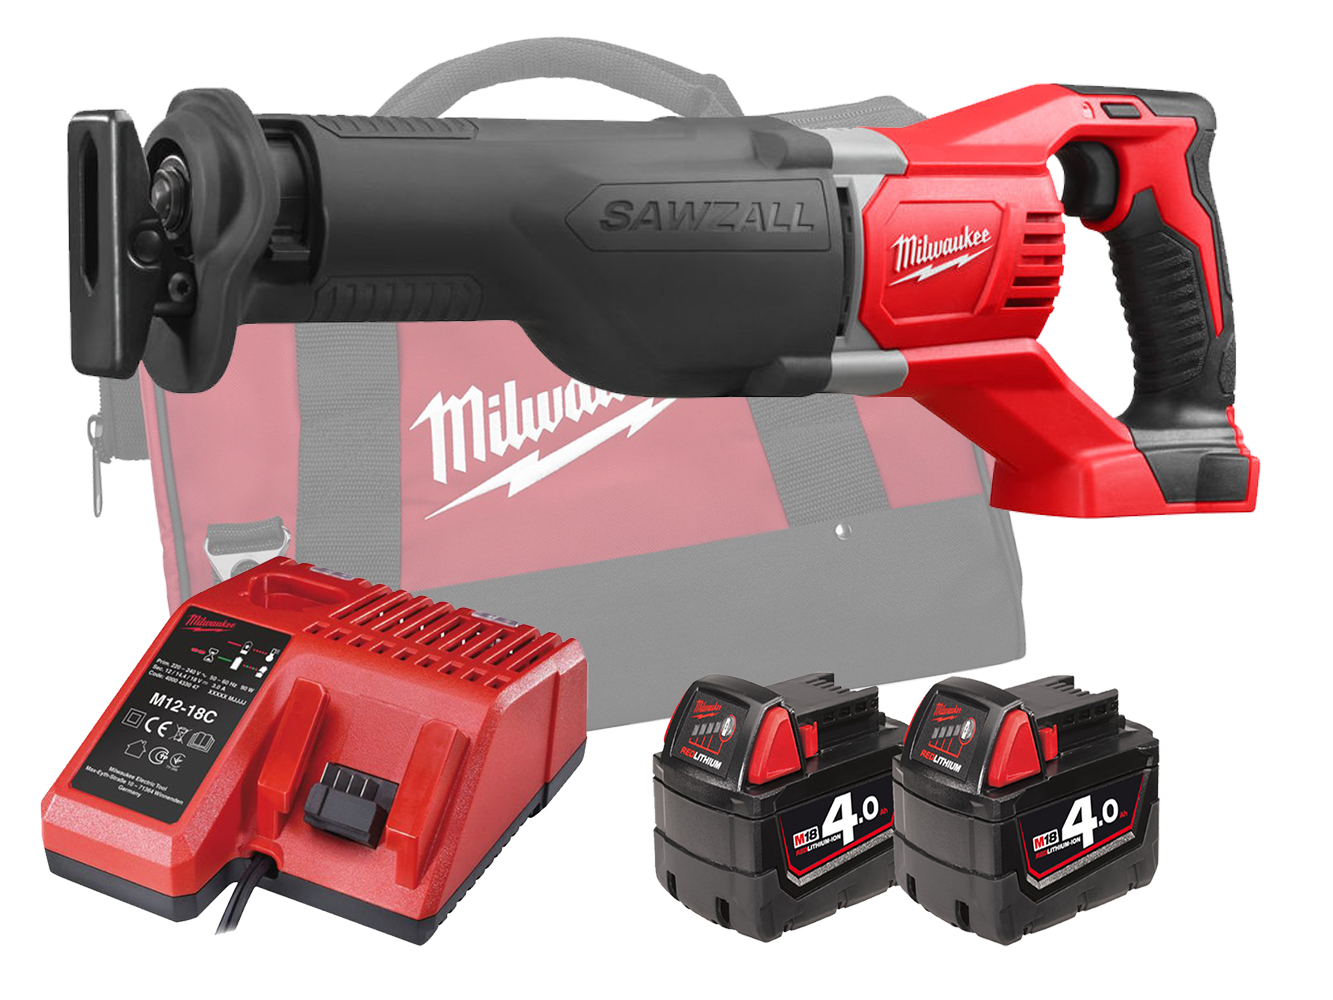 MILWAUKEE 18V BRUSHED SAWZALL (RECIPROCATING SAW) - M18BSX - 4.0AH PACK